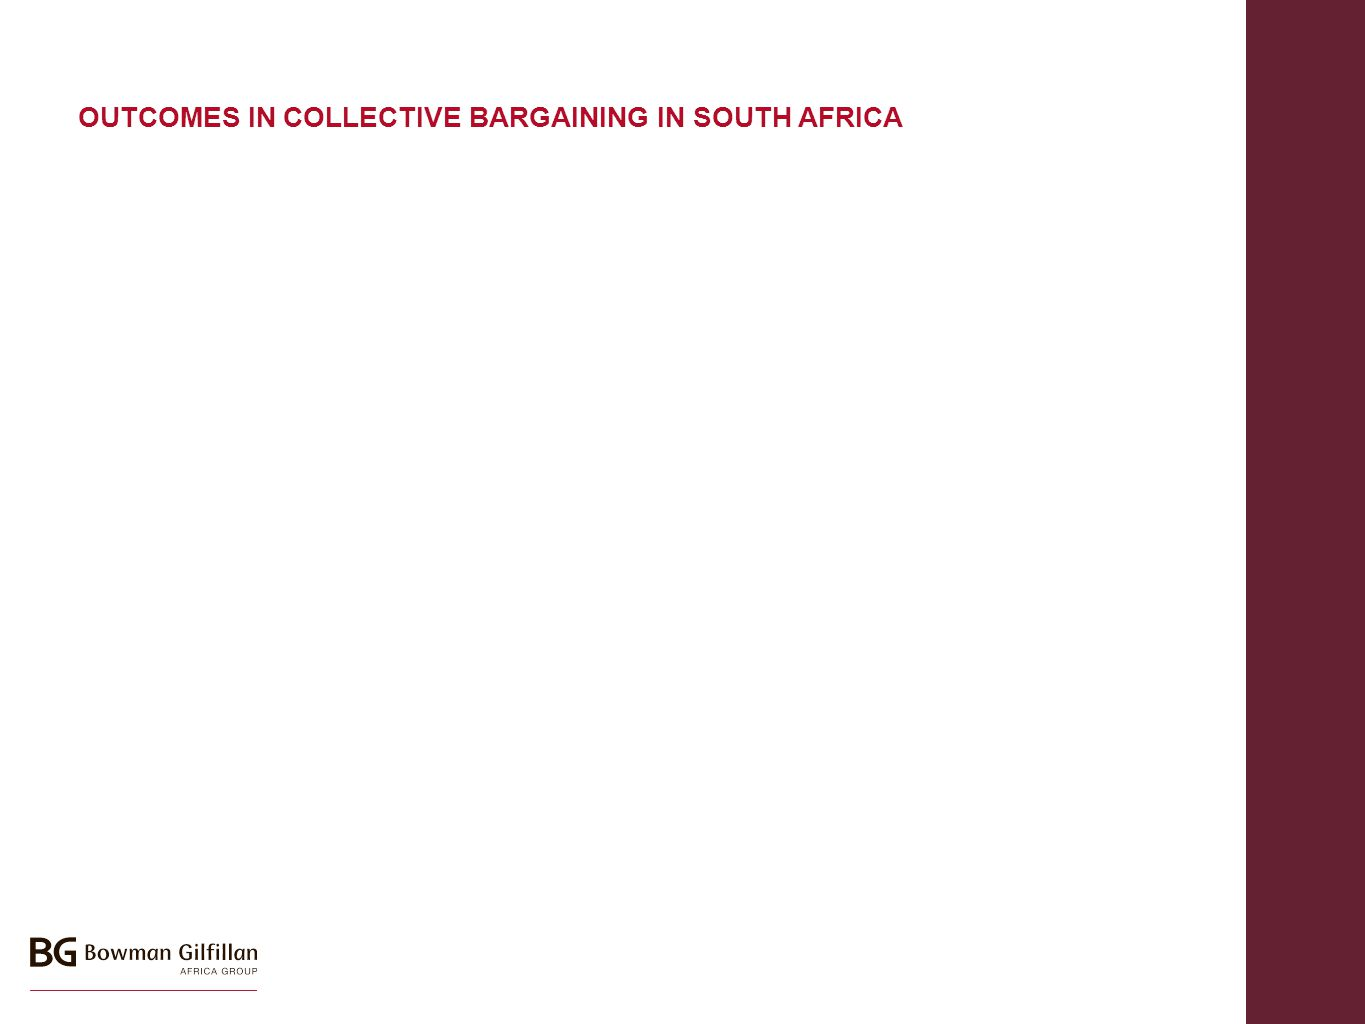 OUTCOMES IN COLLECTIVE BARGAINING IN SOUTH AFRICA